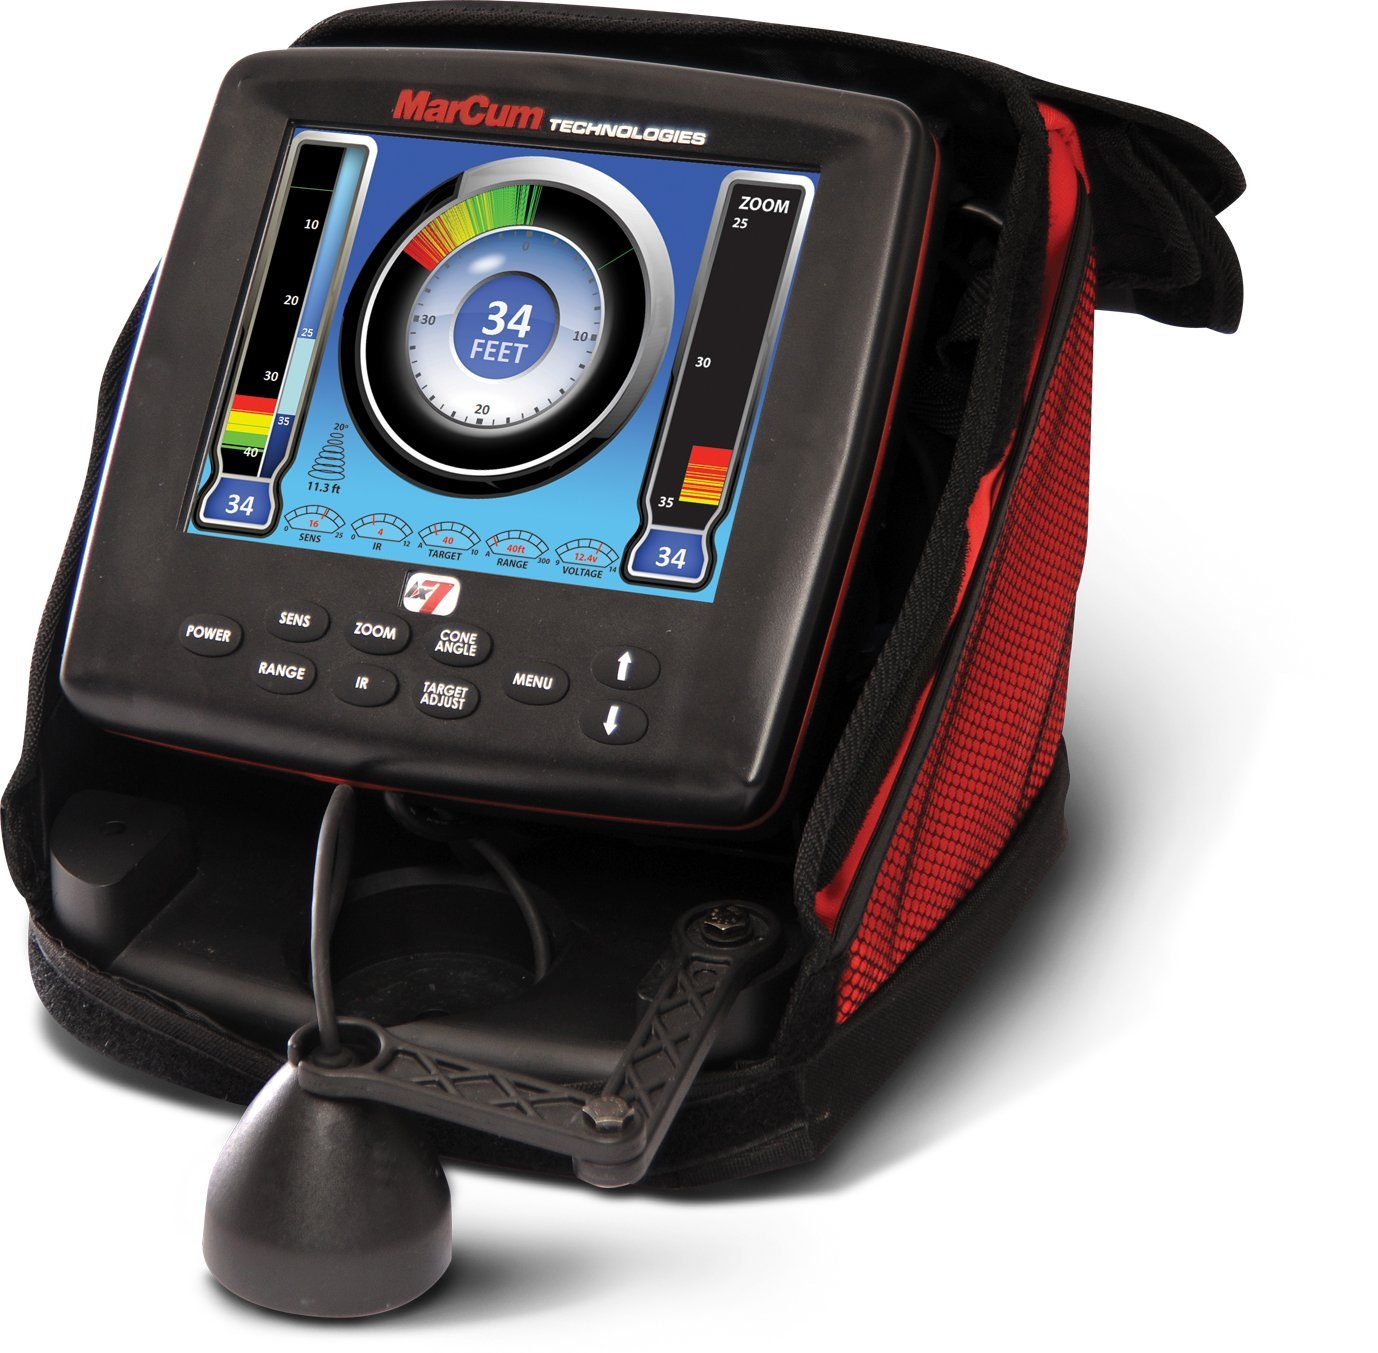 Marcum lx 7 review fish finder guy for Fish finder reviews